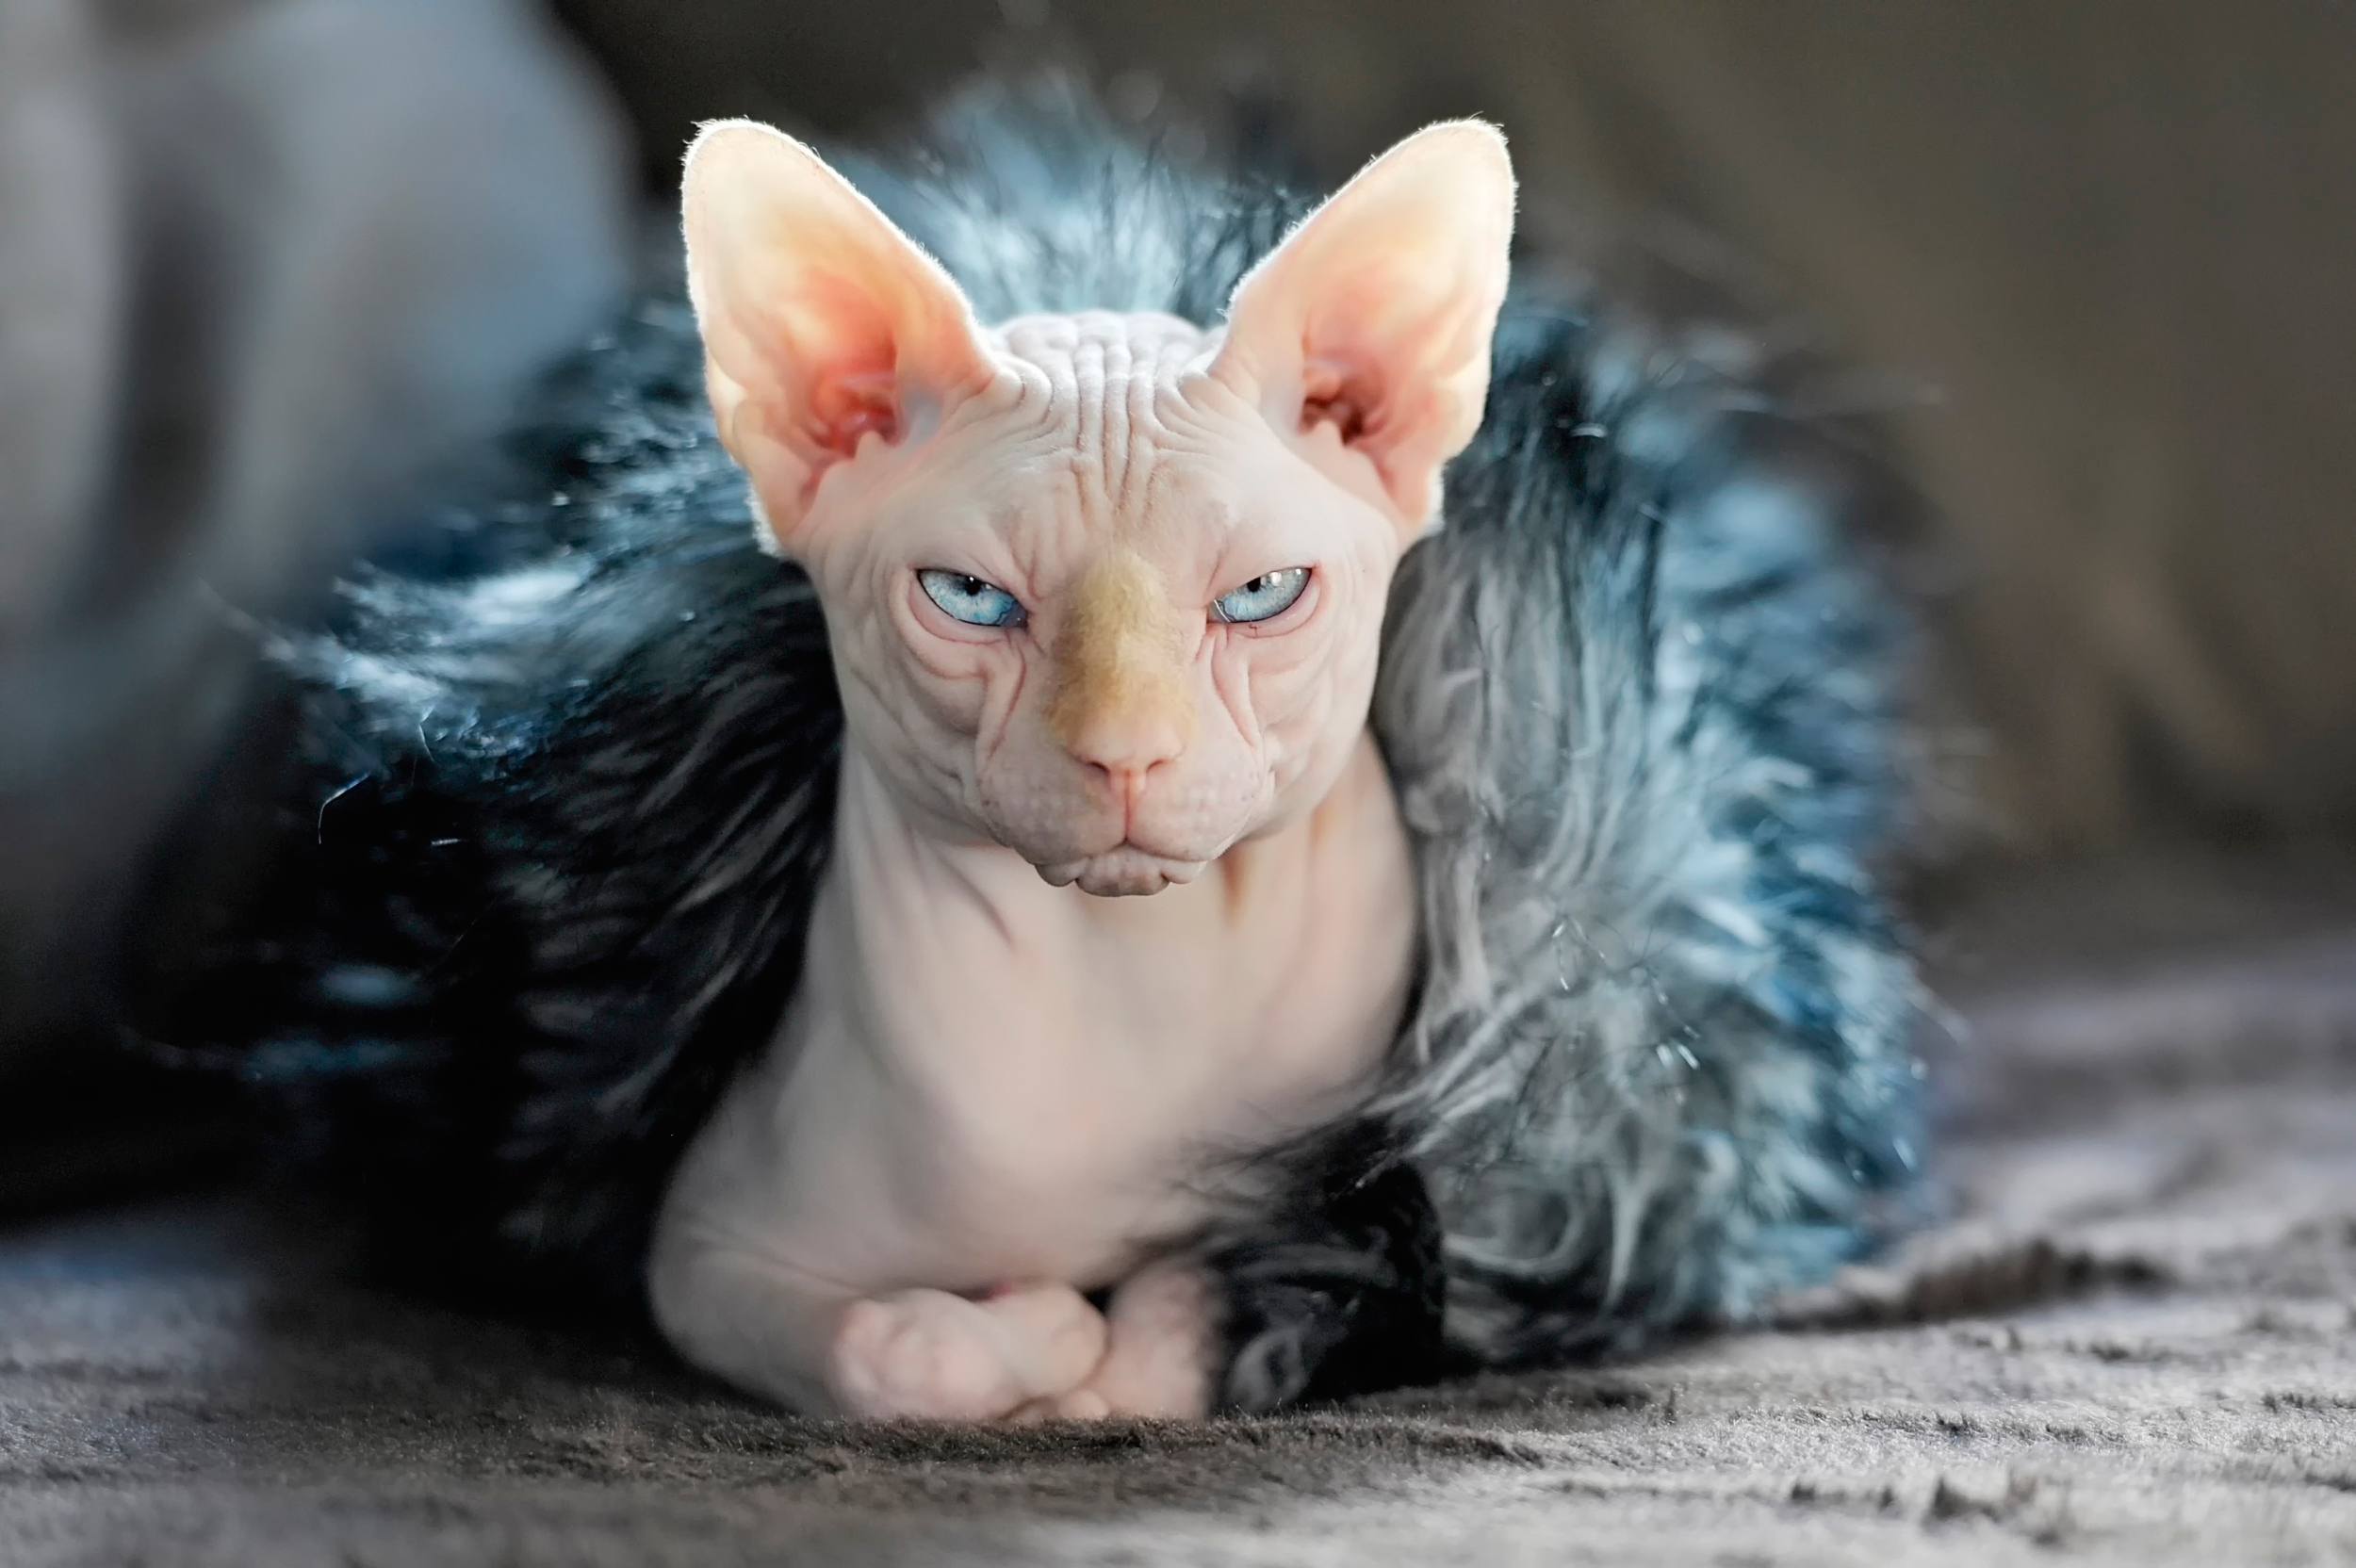 77417 download wallpaper Animals, Sphinx, Cat, Fur screensavers and pictures for free